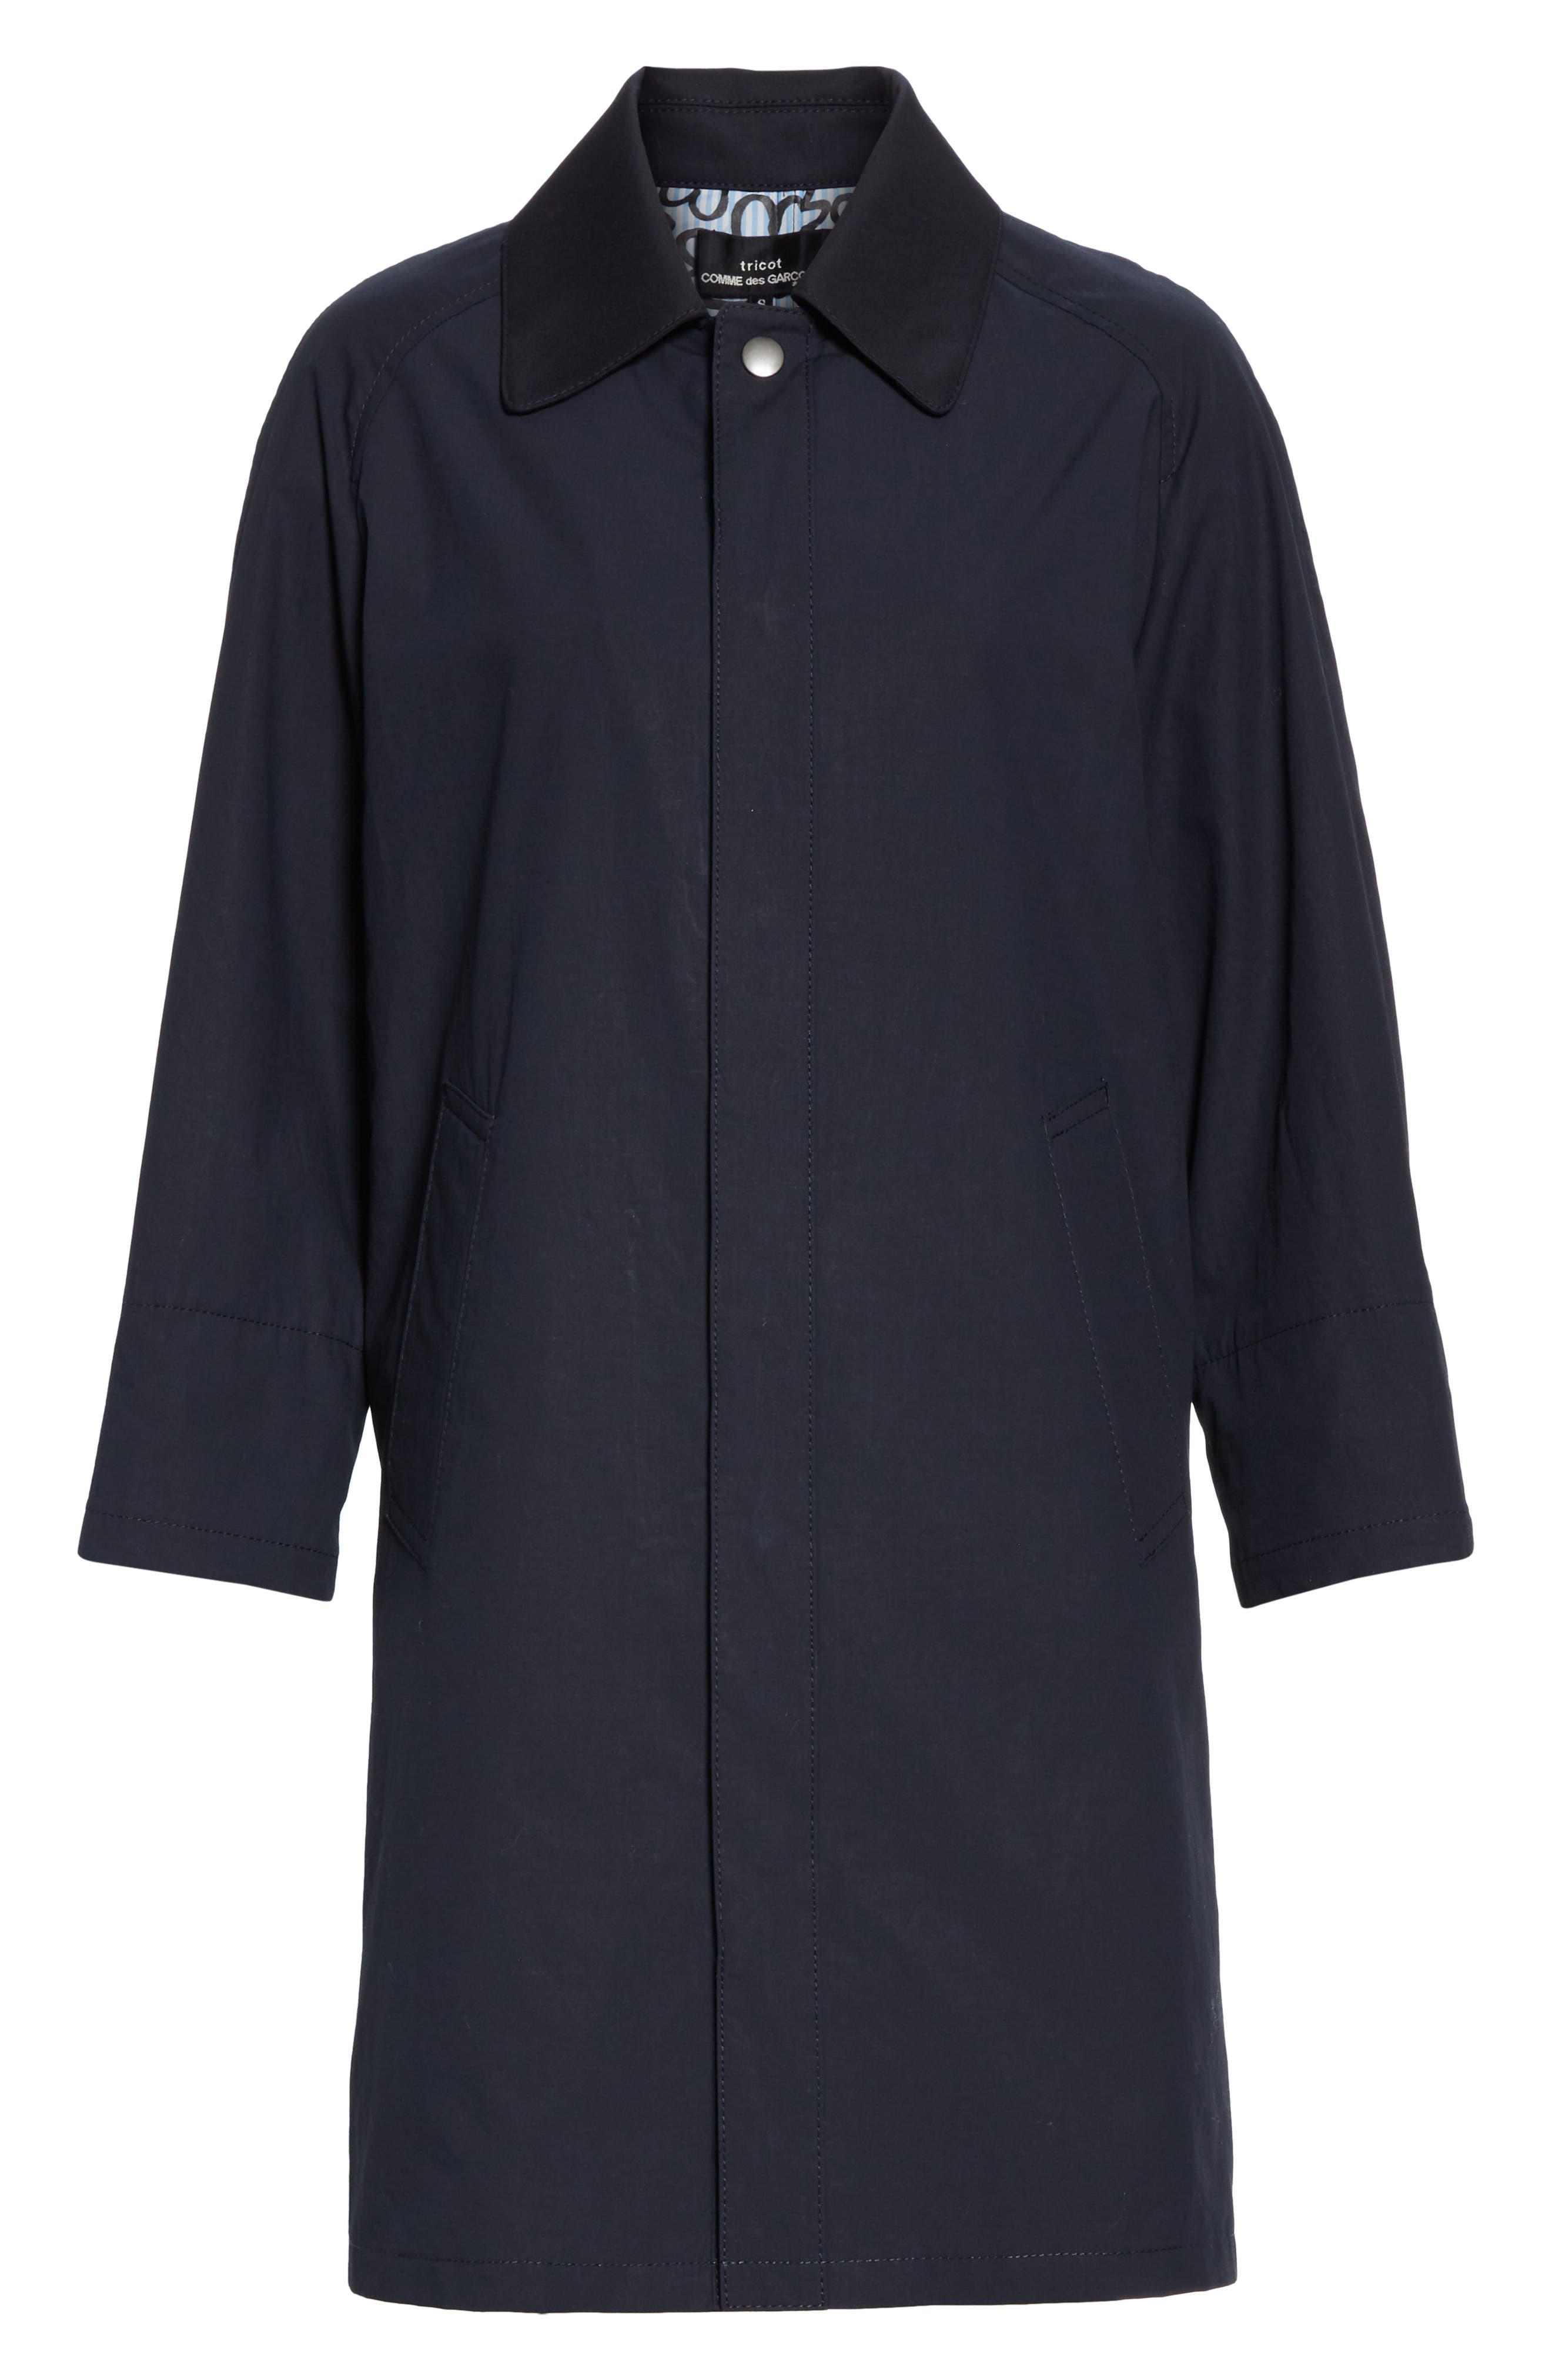 TRICOT COMME DES GARÇONS, Wool Cab Coat with Print Lining, Alternate thumbnail 5, color, NAVY